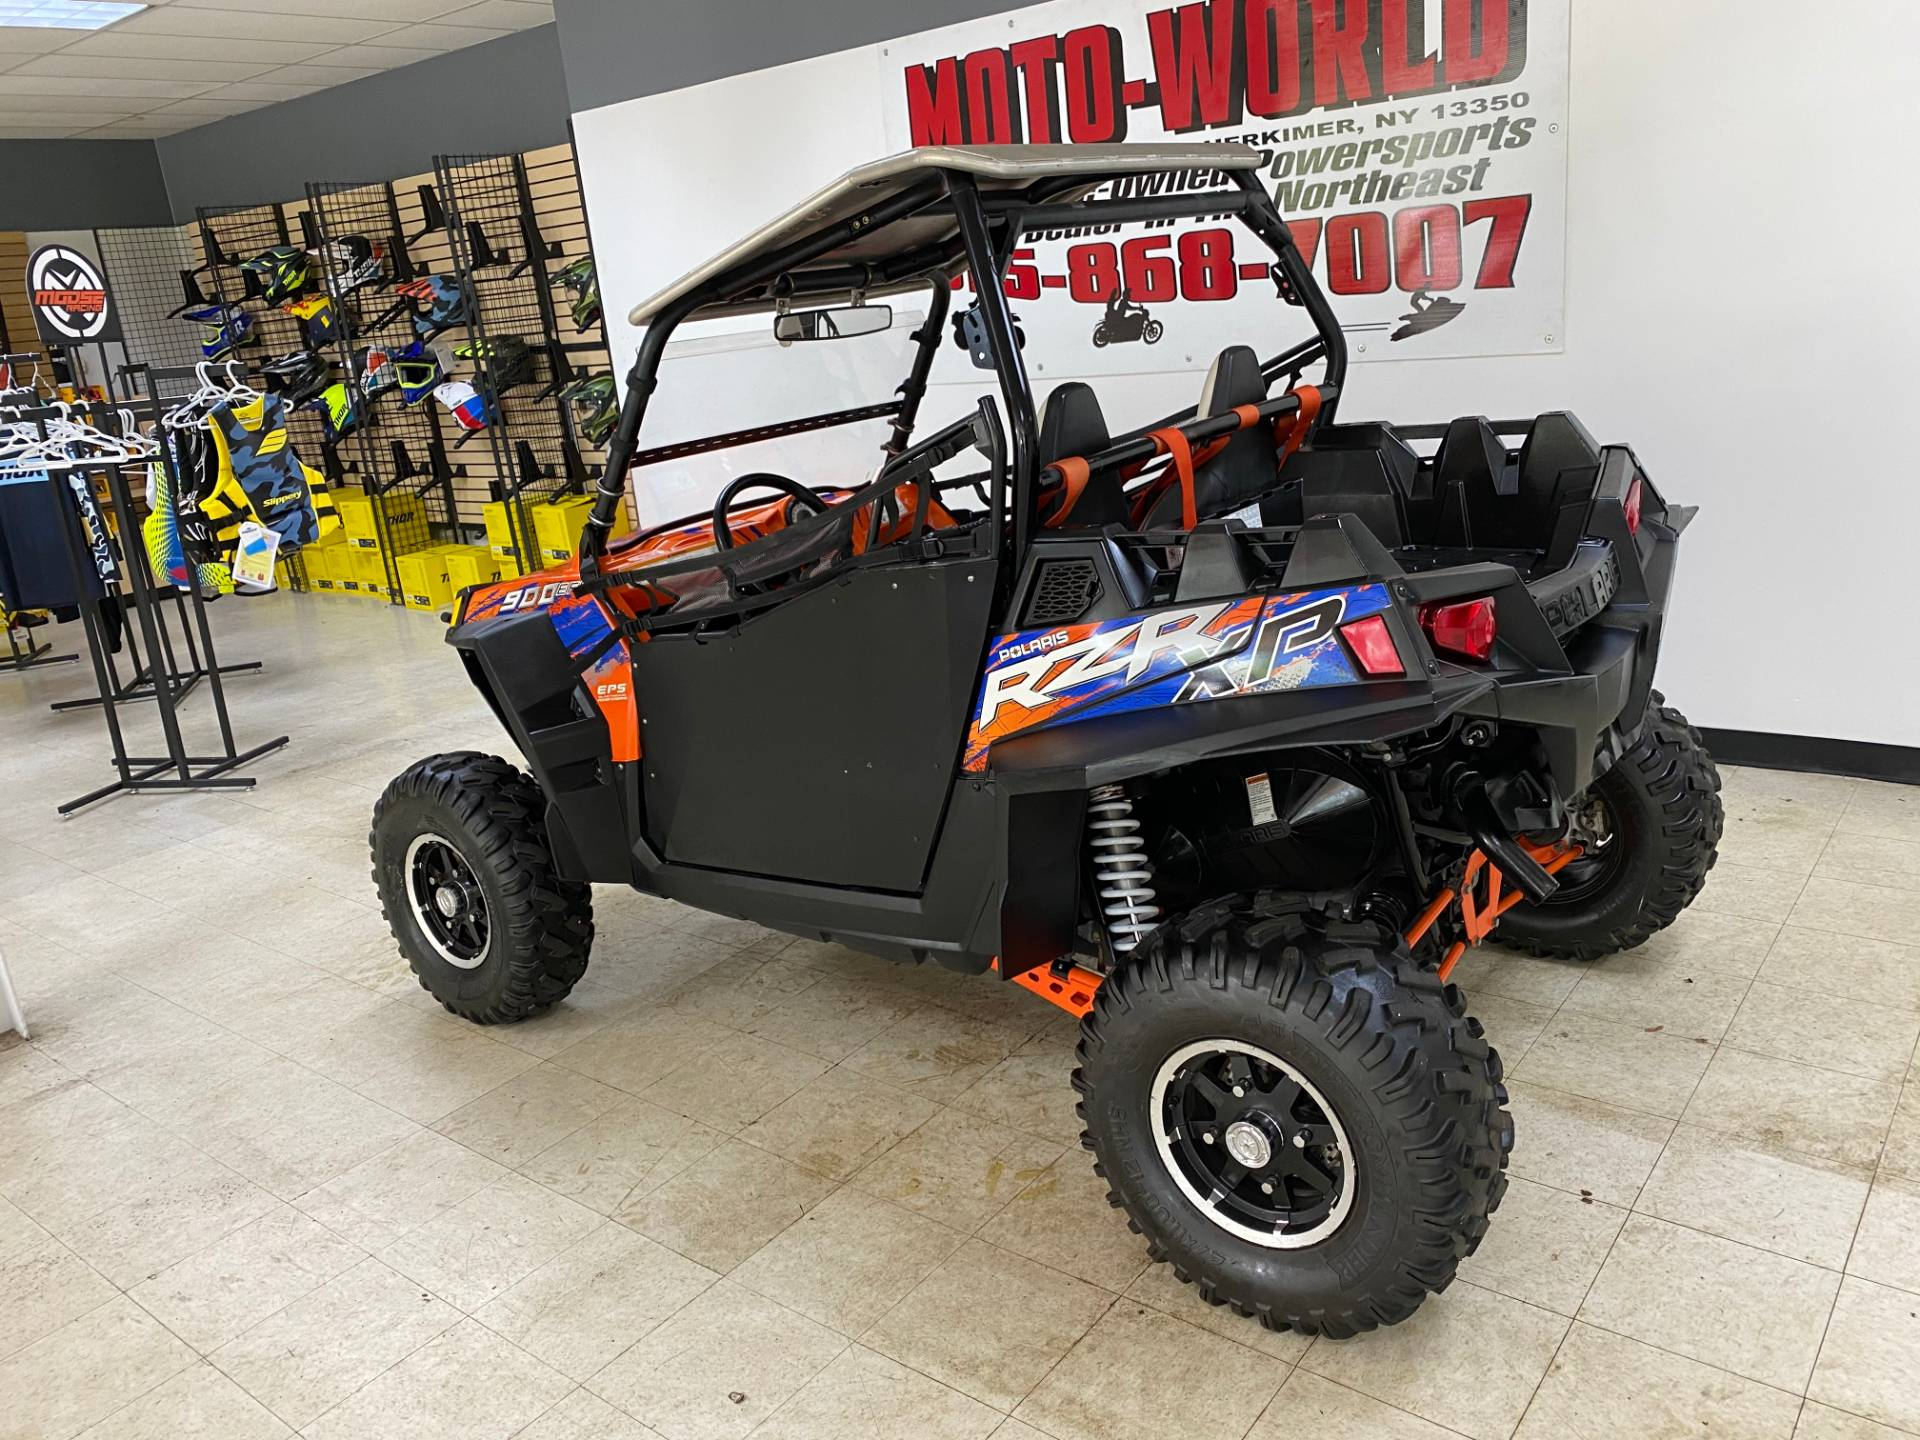 2013 Polaris RZR® XP 900 EPS LE in Herkimer, New York - Photo 17